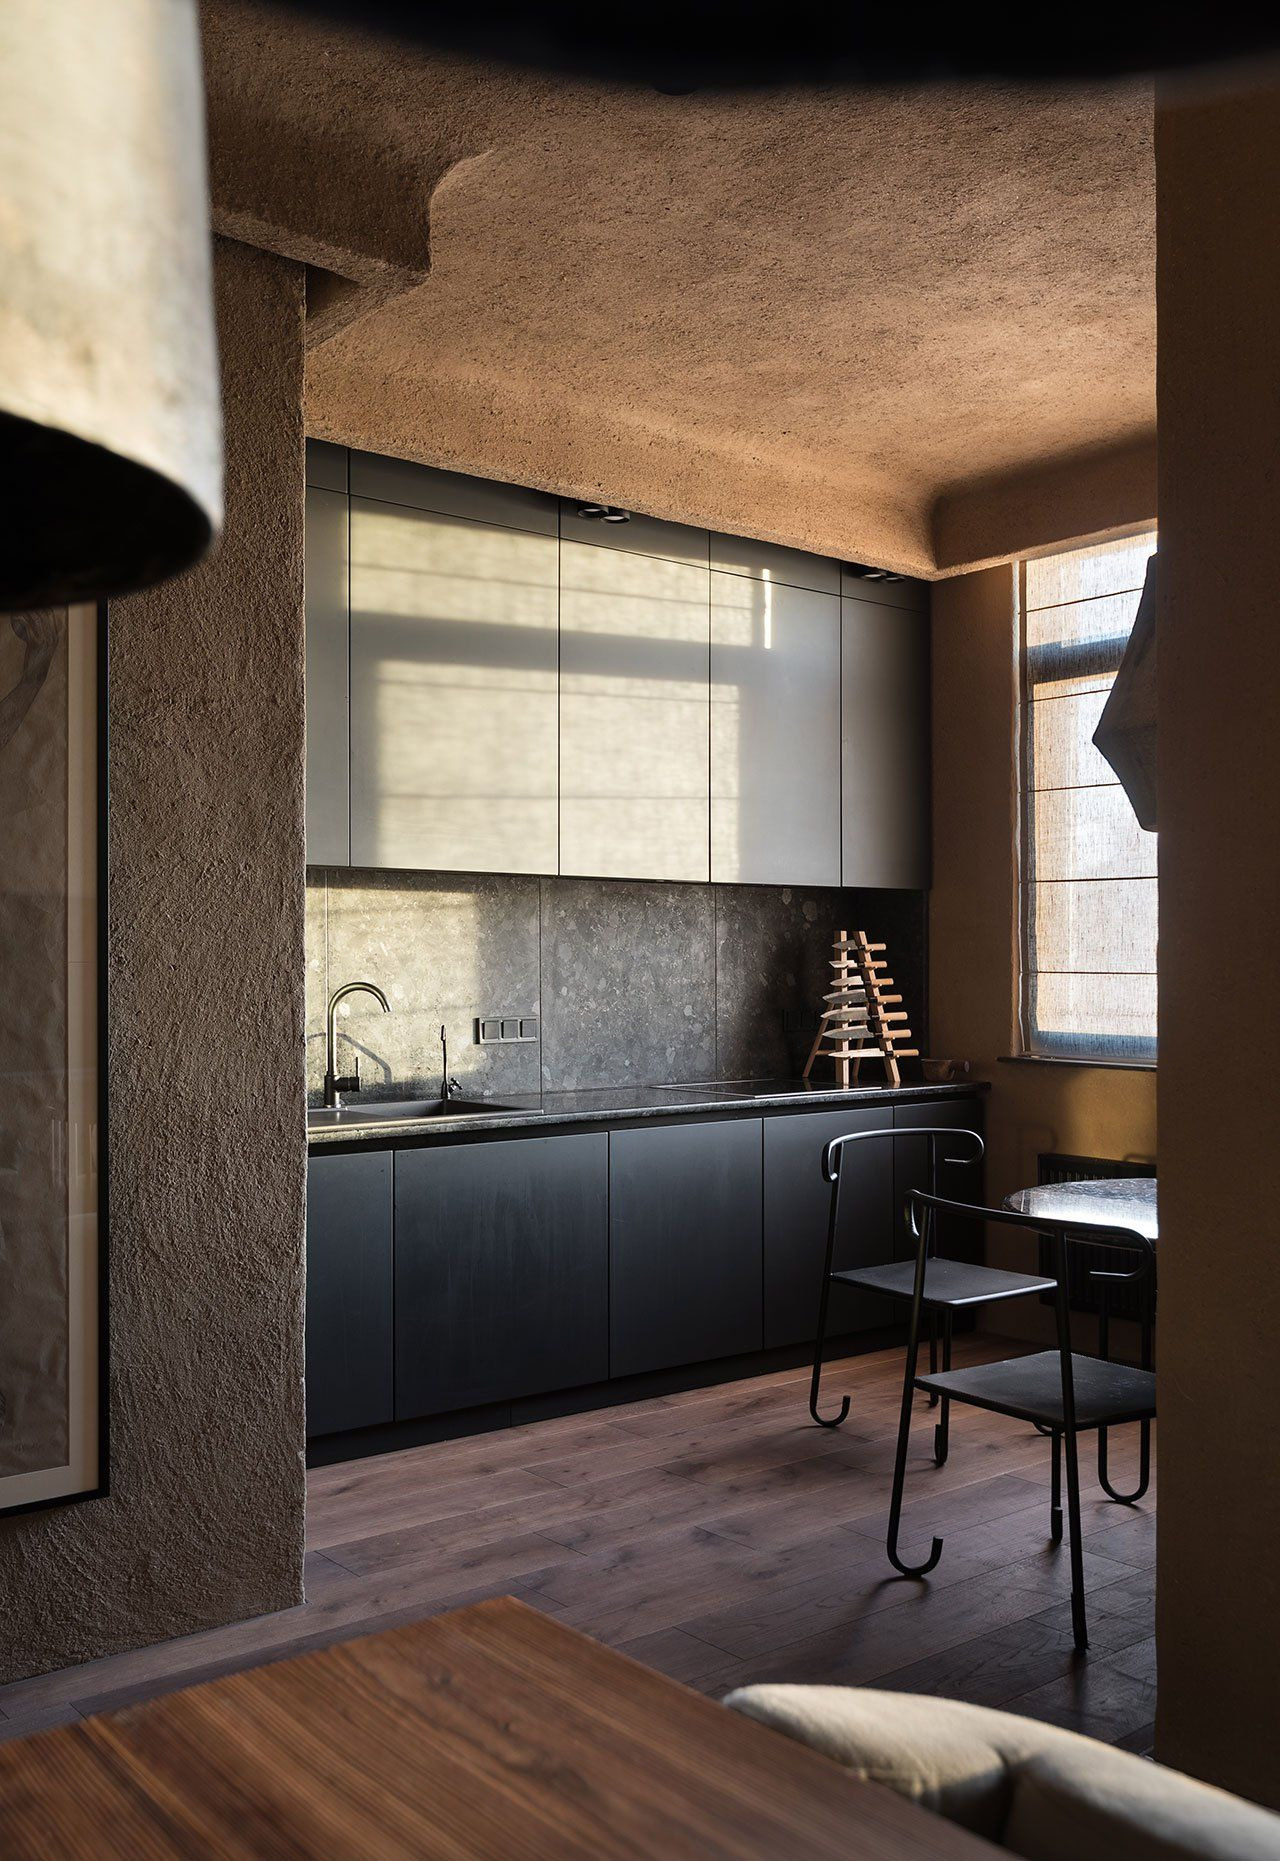 Modern Architecture Bedroom Design Beautiful Imperfection is Beautiful the Wabi Sabi Apartment by Sergey